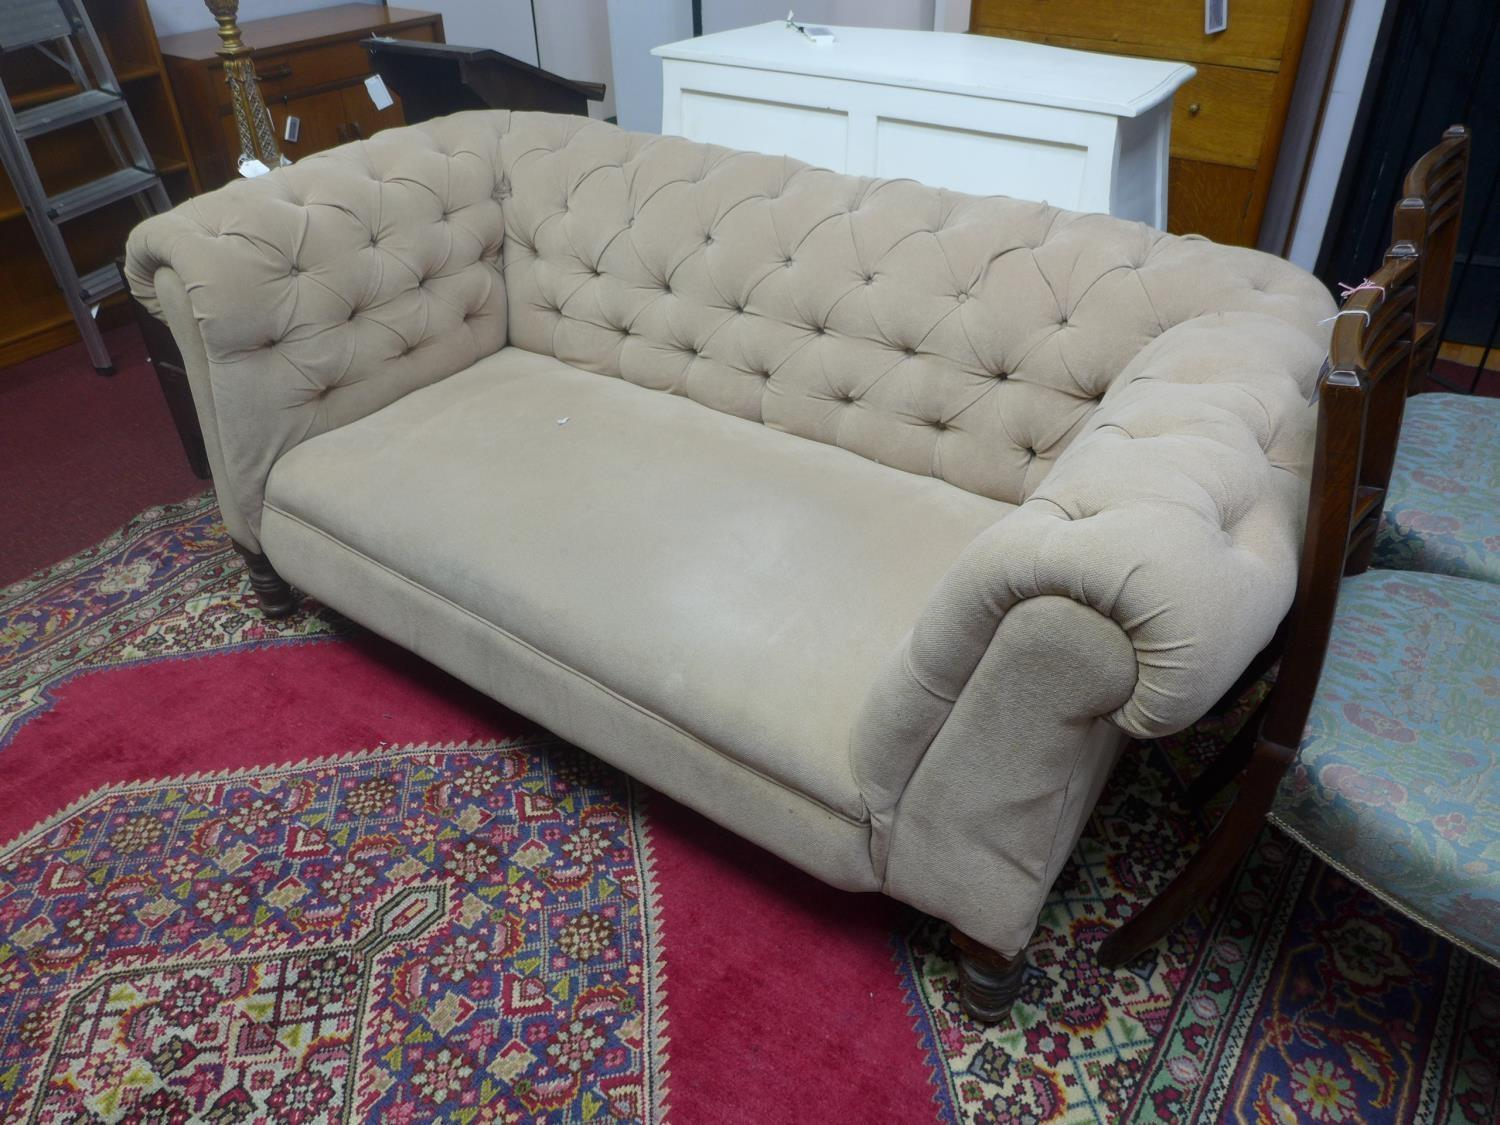 Lot 188 - A Chesterfield sofa with button back upholstery, on turned legs, H.70 W.165 D.88cm